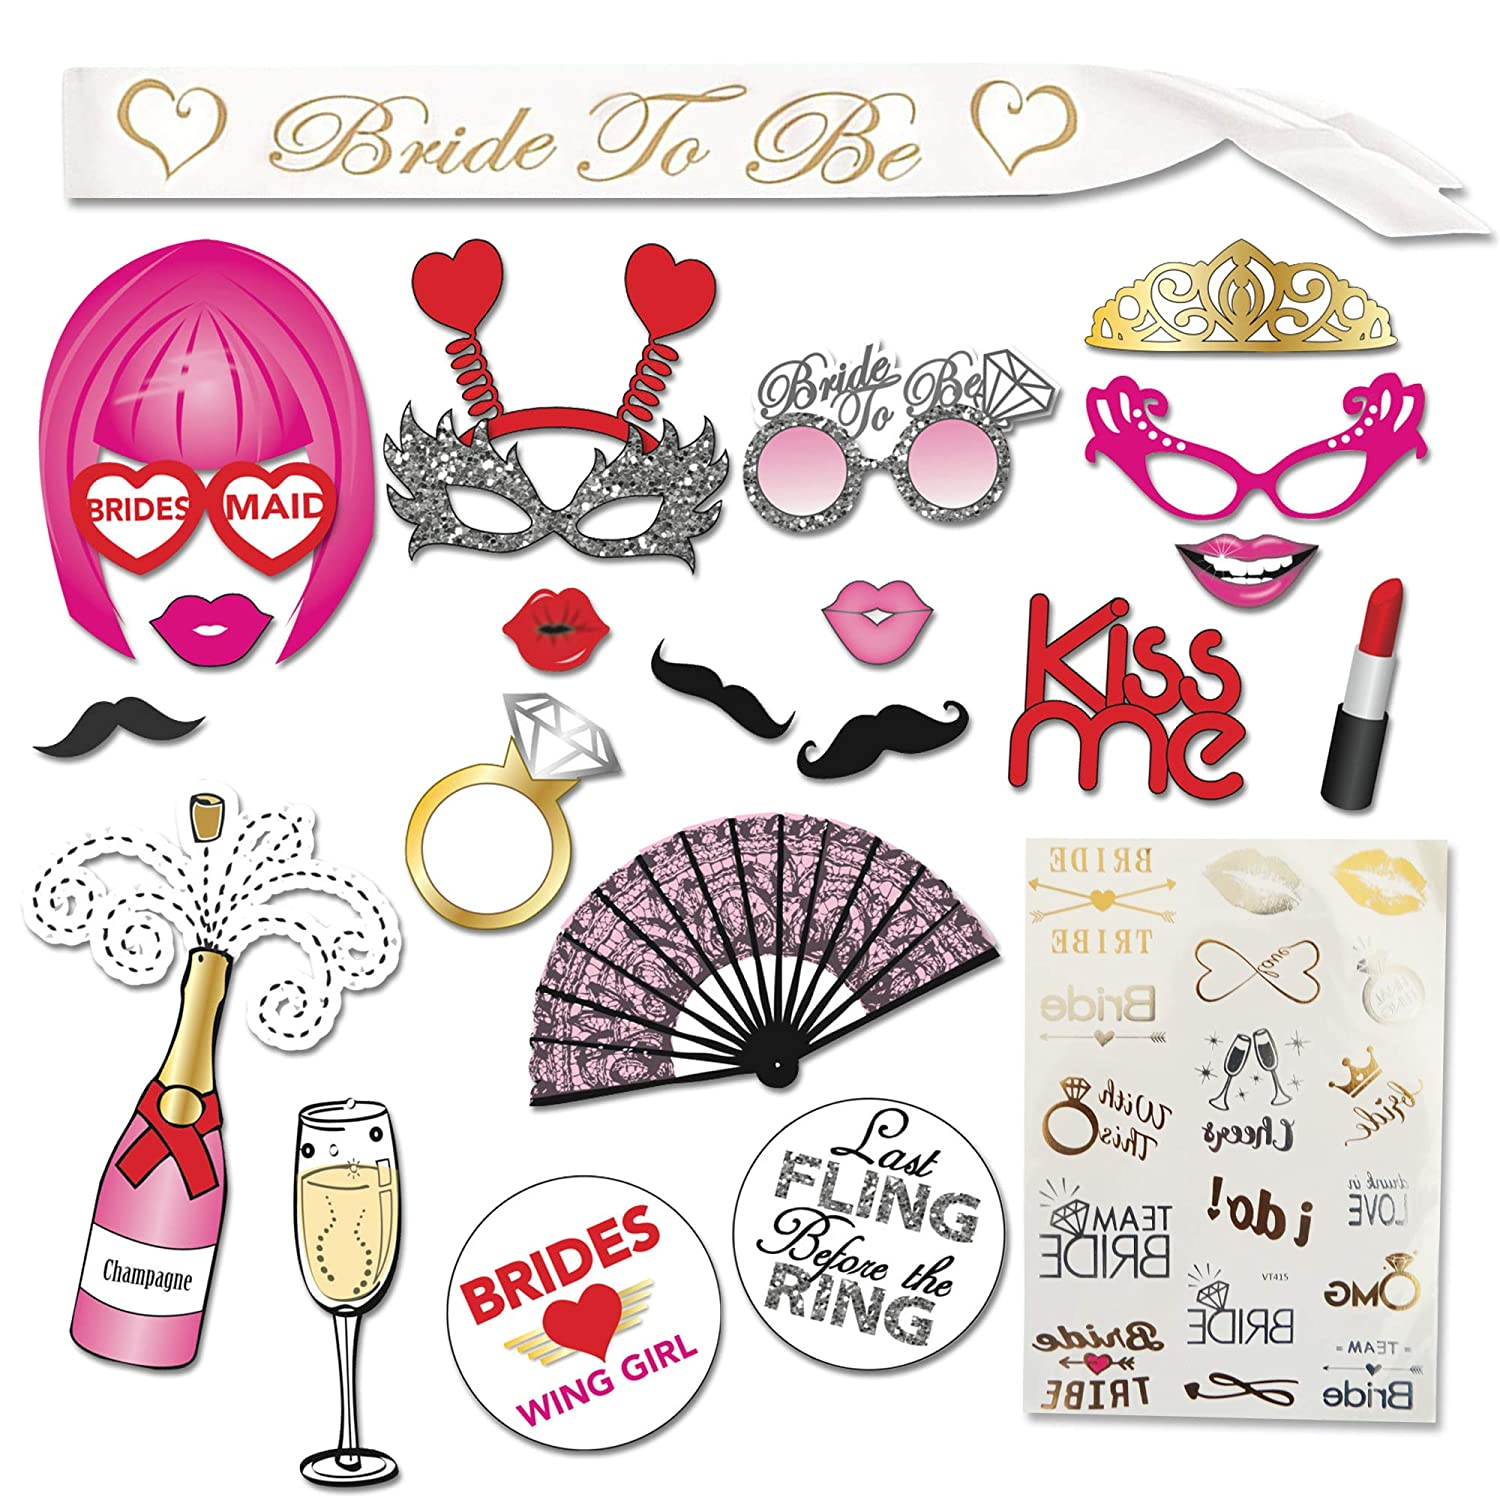 Bachelorette Party Supplies Kit - Bridal Shower Supplies | Bride to be Sash, LARGE Bachelorette Party Photo booth Props (20 pieces) with Glitters, ...